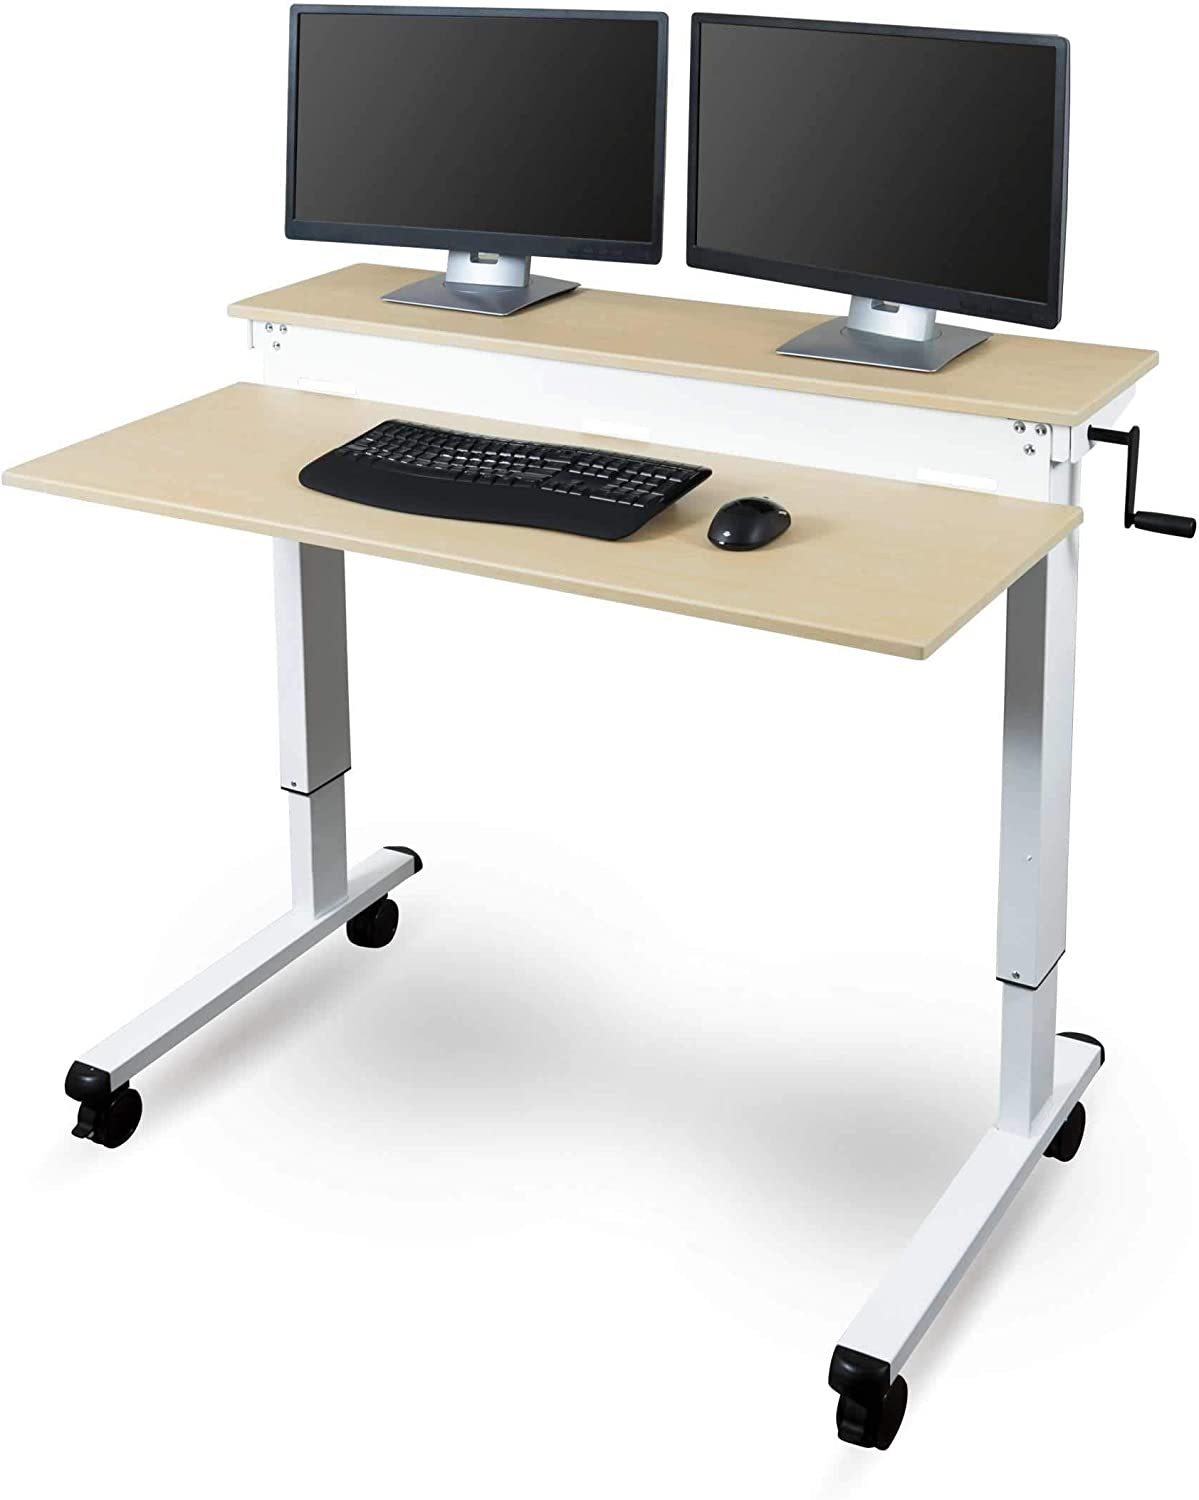 - Amazon.com: Stand Up Desk Store Crank Adjustable Sit To Stand Up